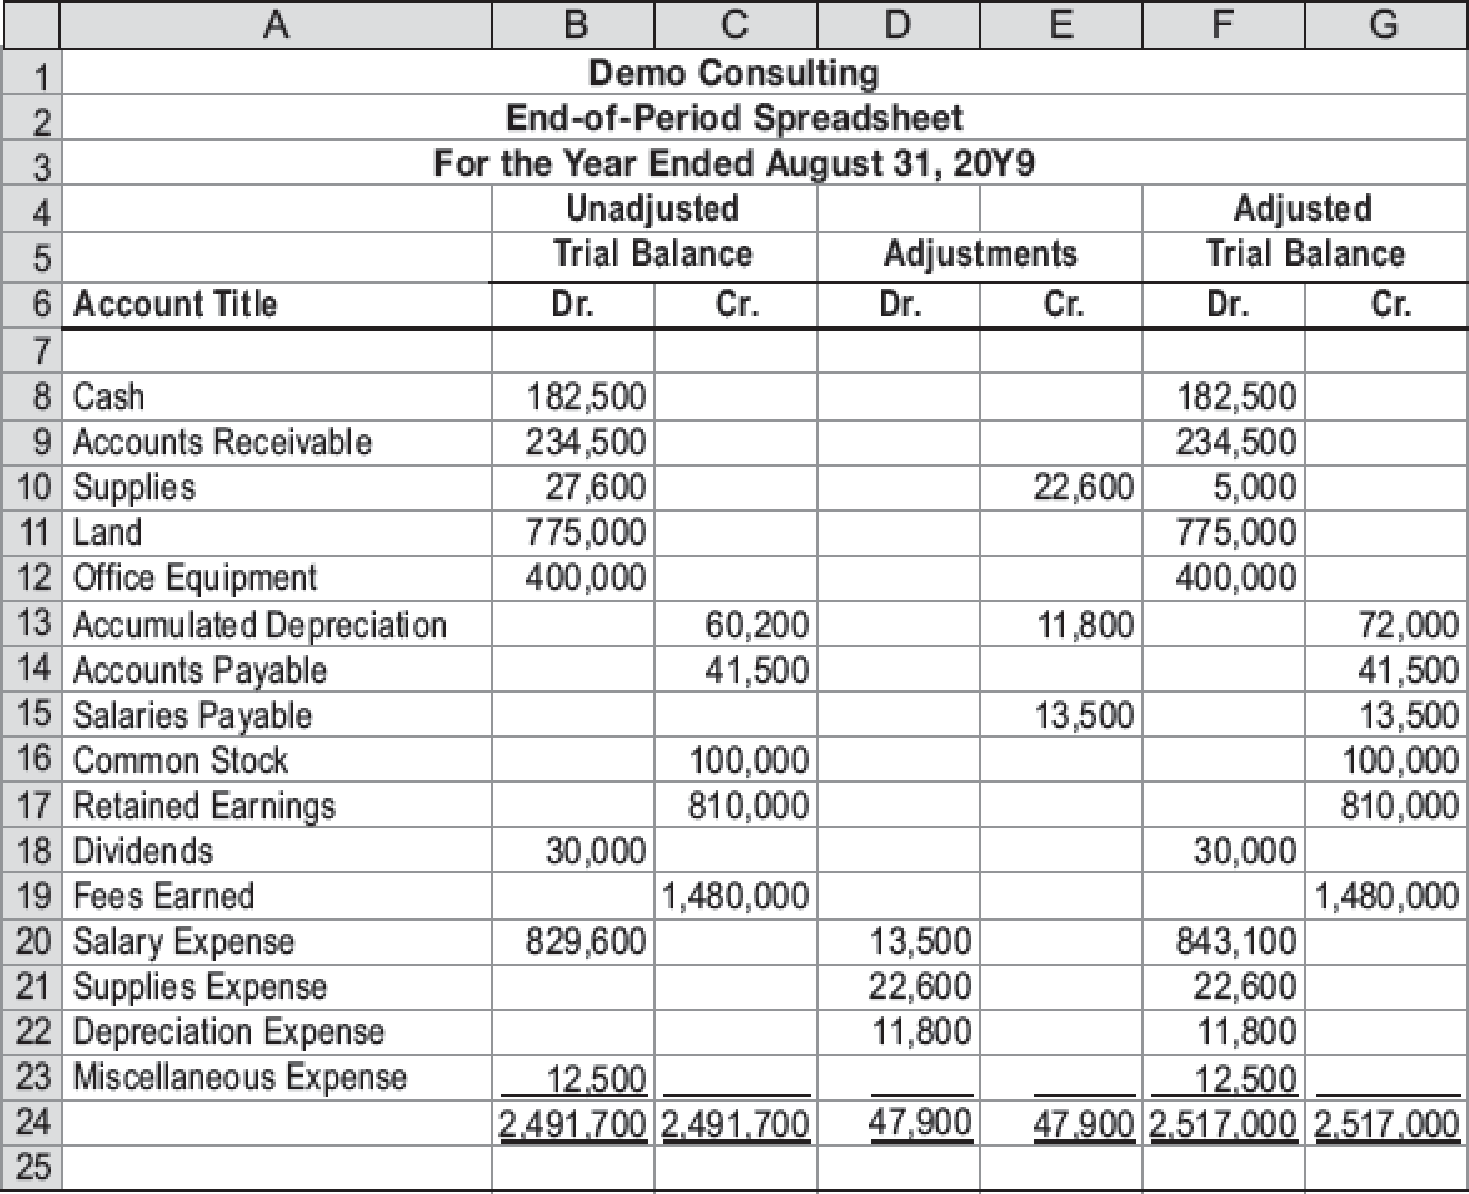 Chapter 4, Problem 3E, Financial statements from the end-of-period spreadsheet Demo Consulting is a consulting firm owned